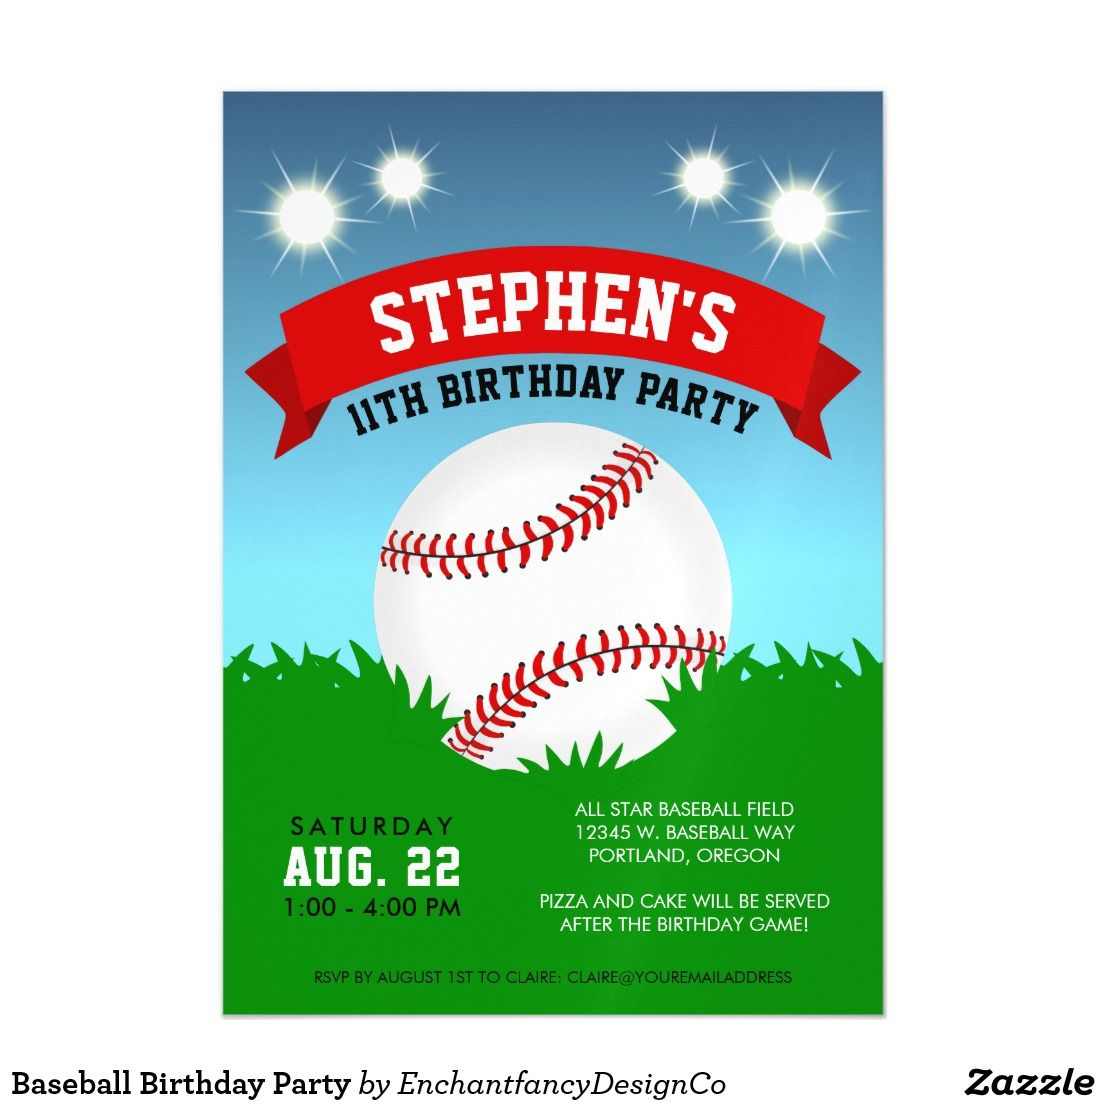 Baseball Birthday Party Magnetic Card Hit a home run for your